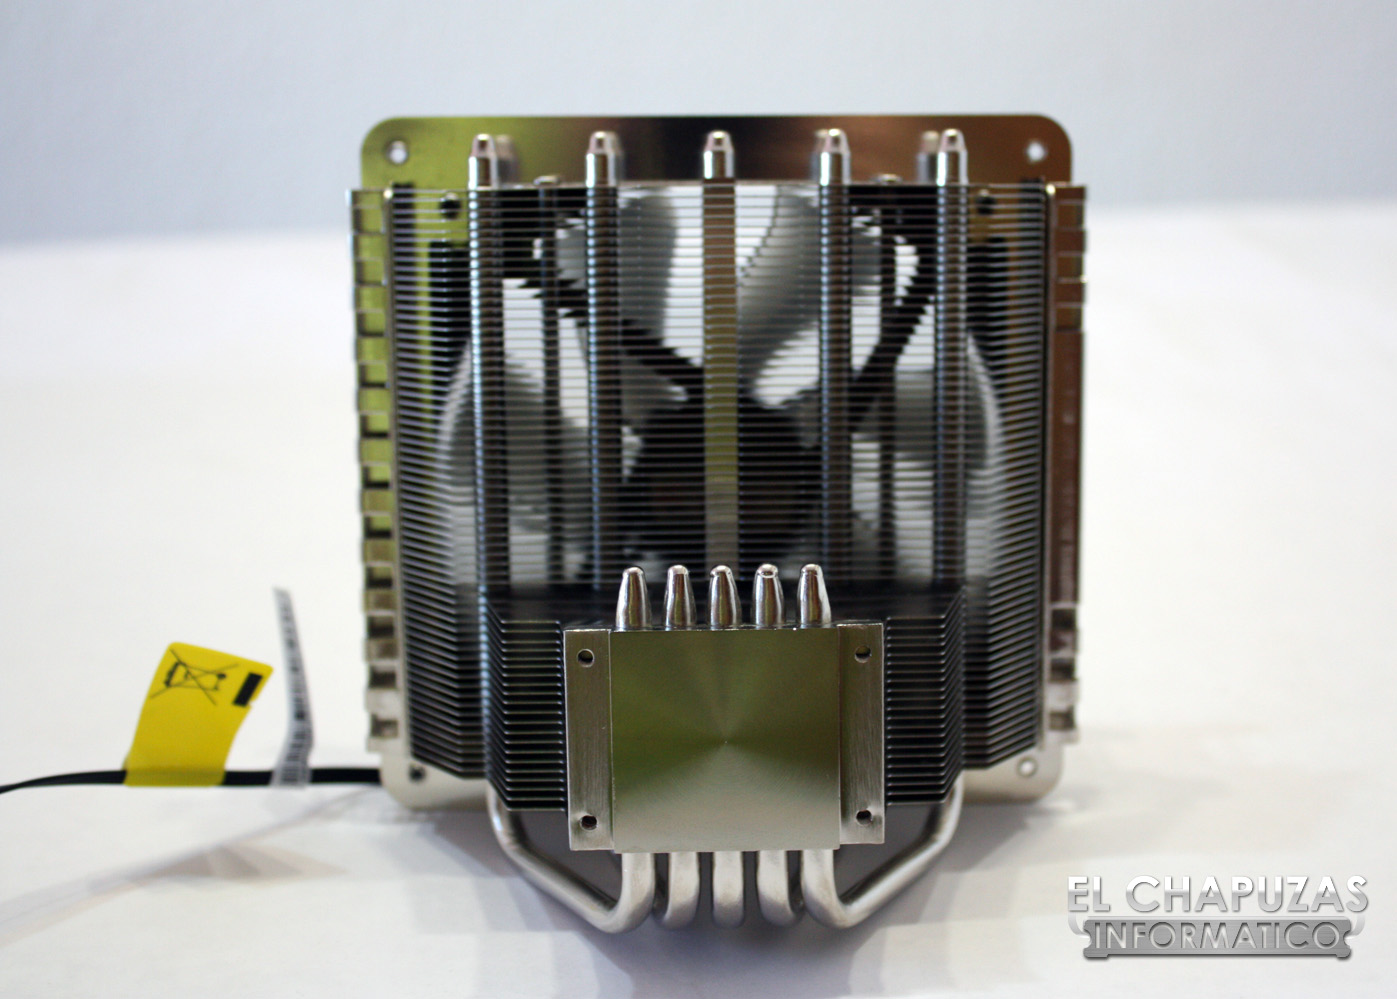 Review: Cooler Master GeminII SF524